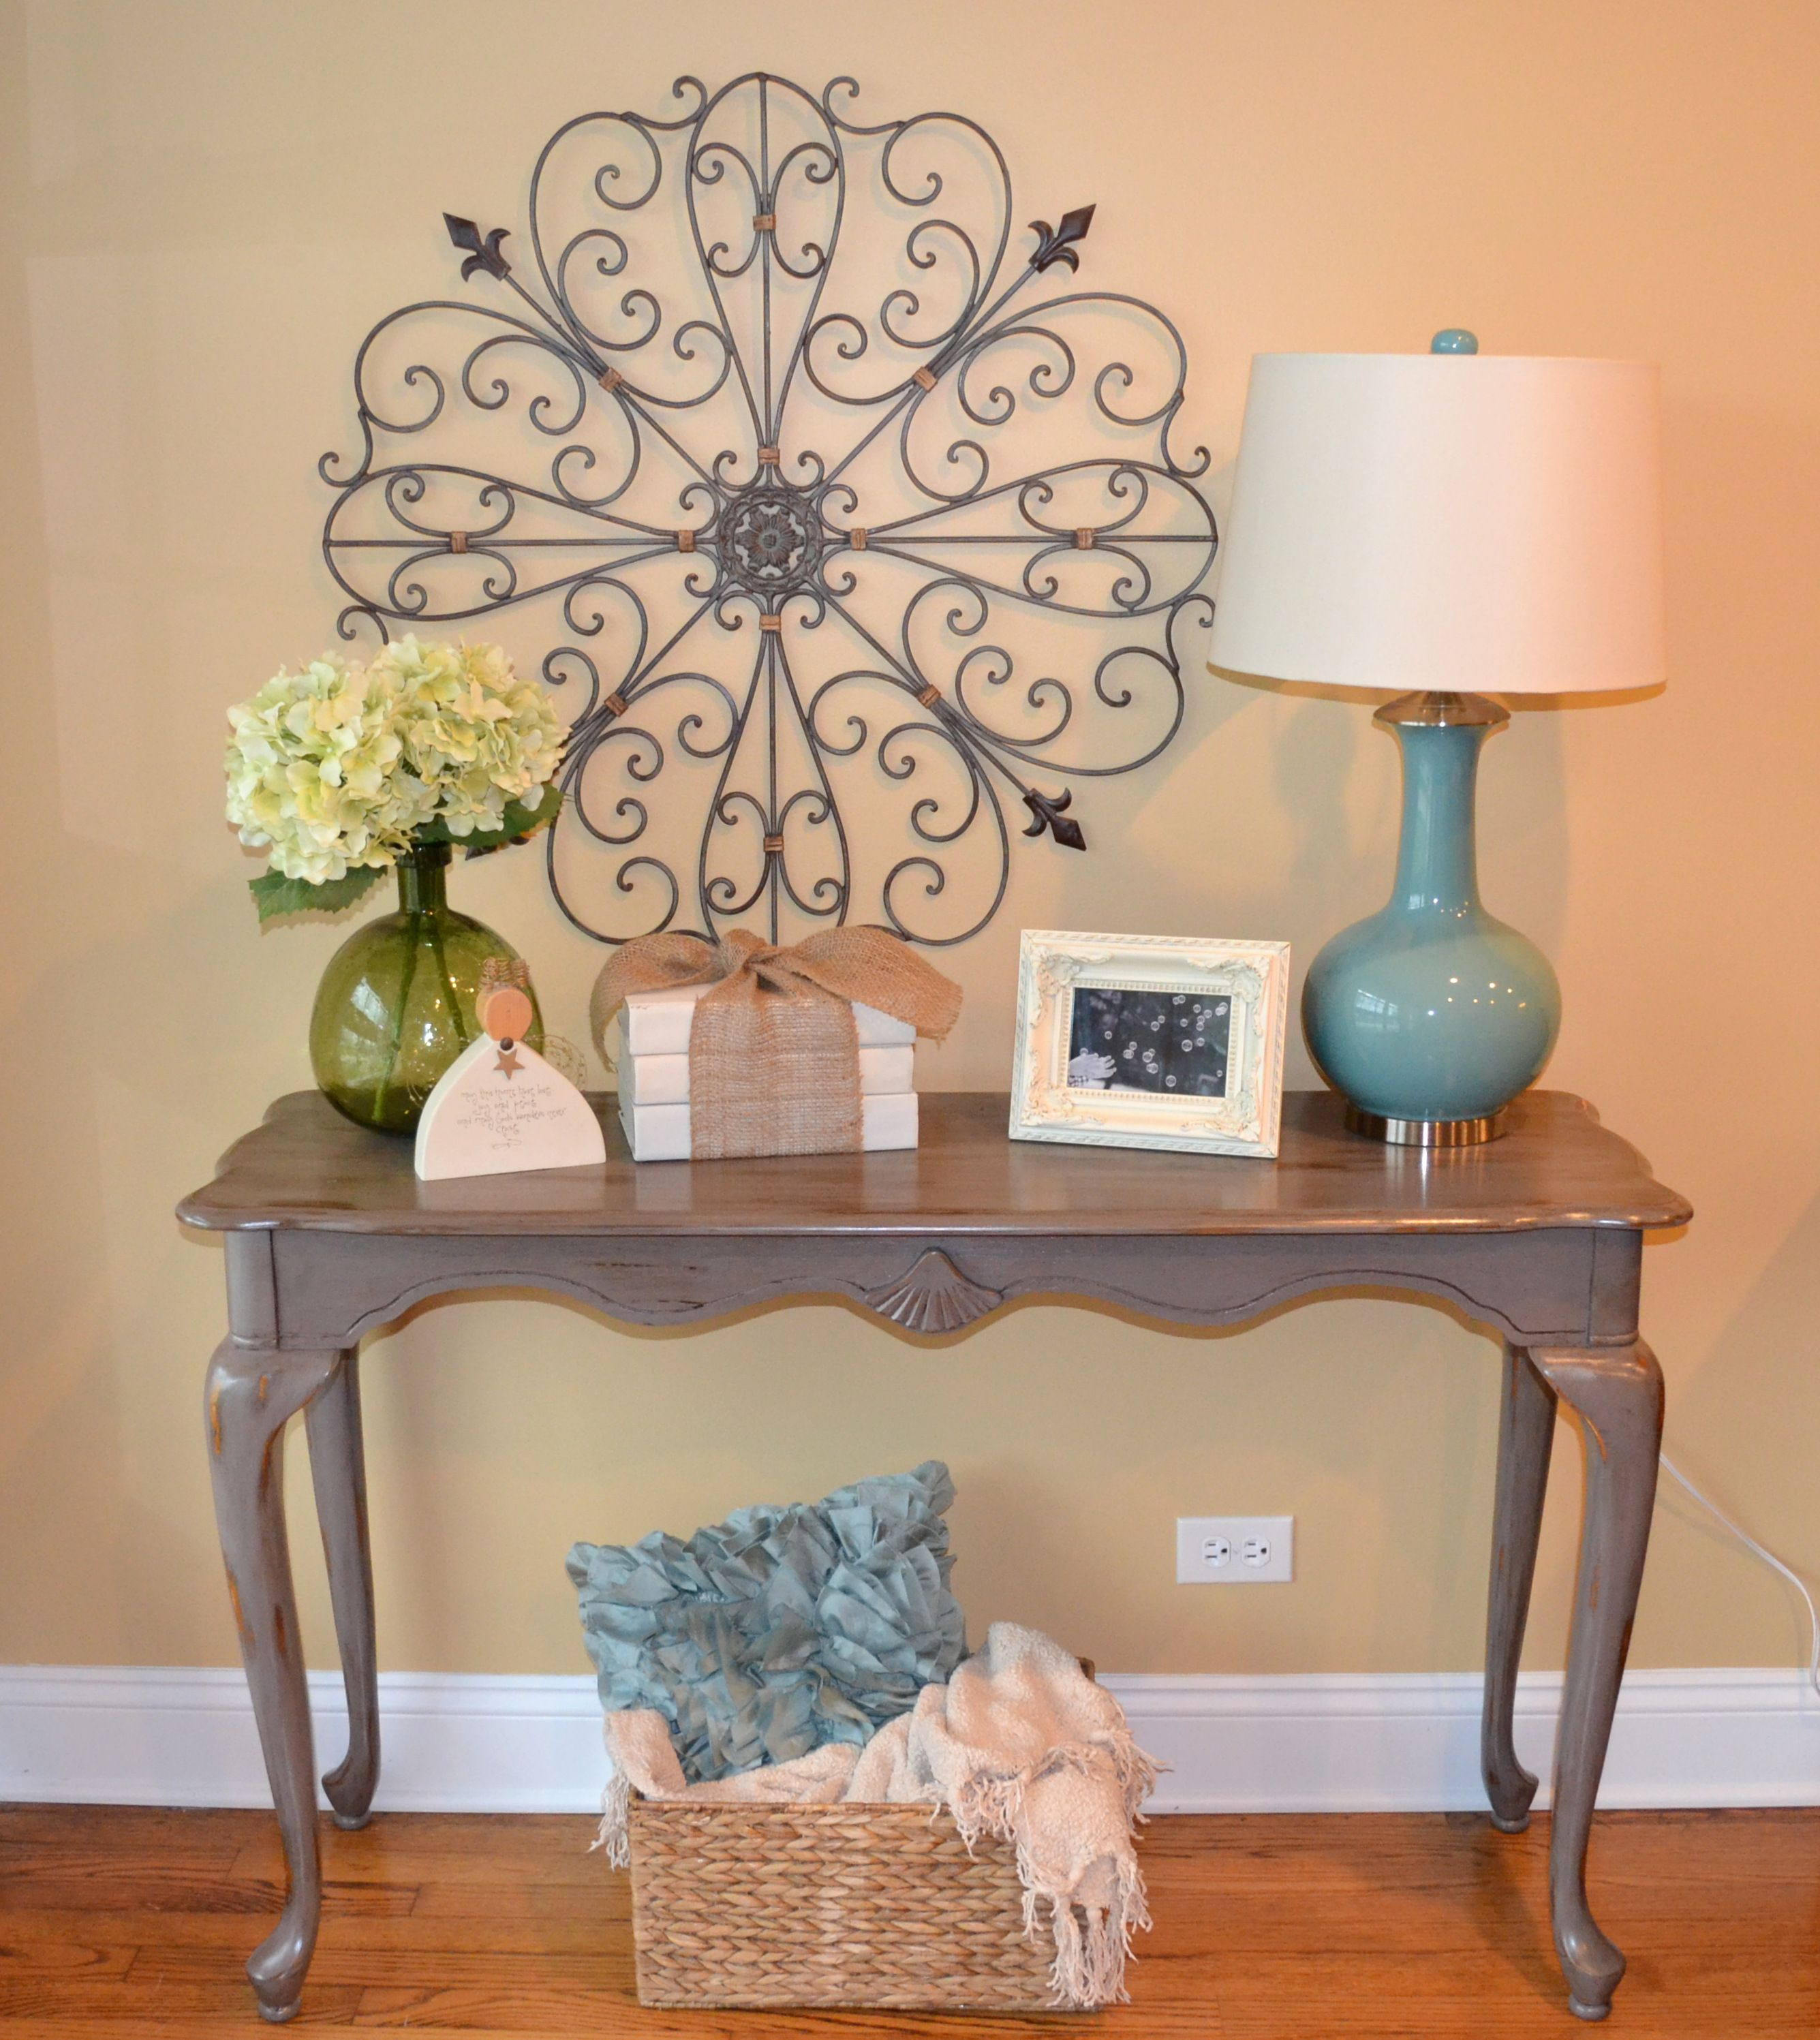 My sisters projects com painted sofa table love the book stack my sisters projects com painted sofa table love the book stack too geotapseo Image collections